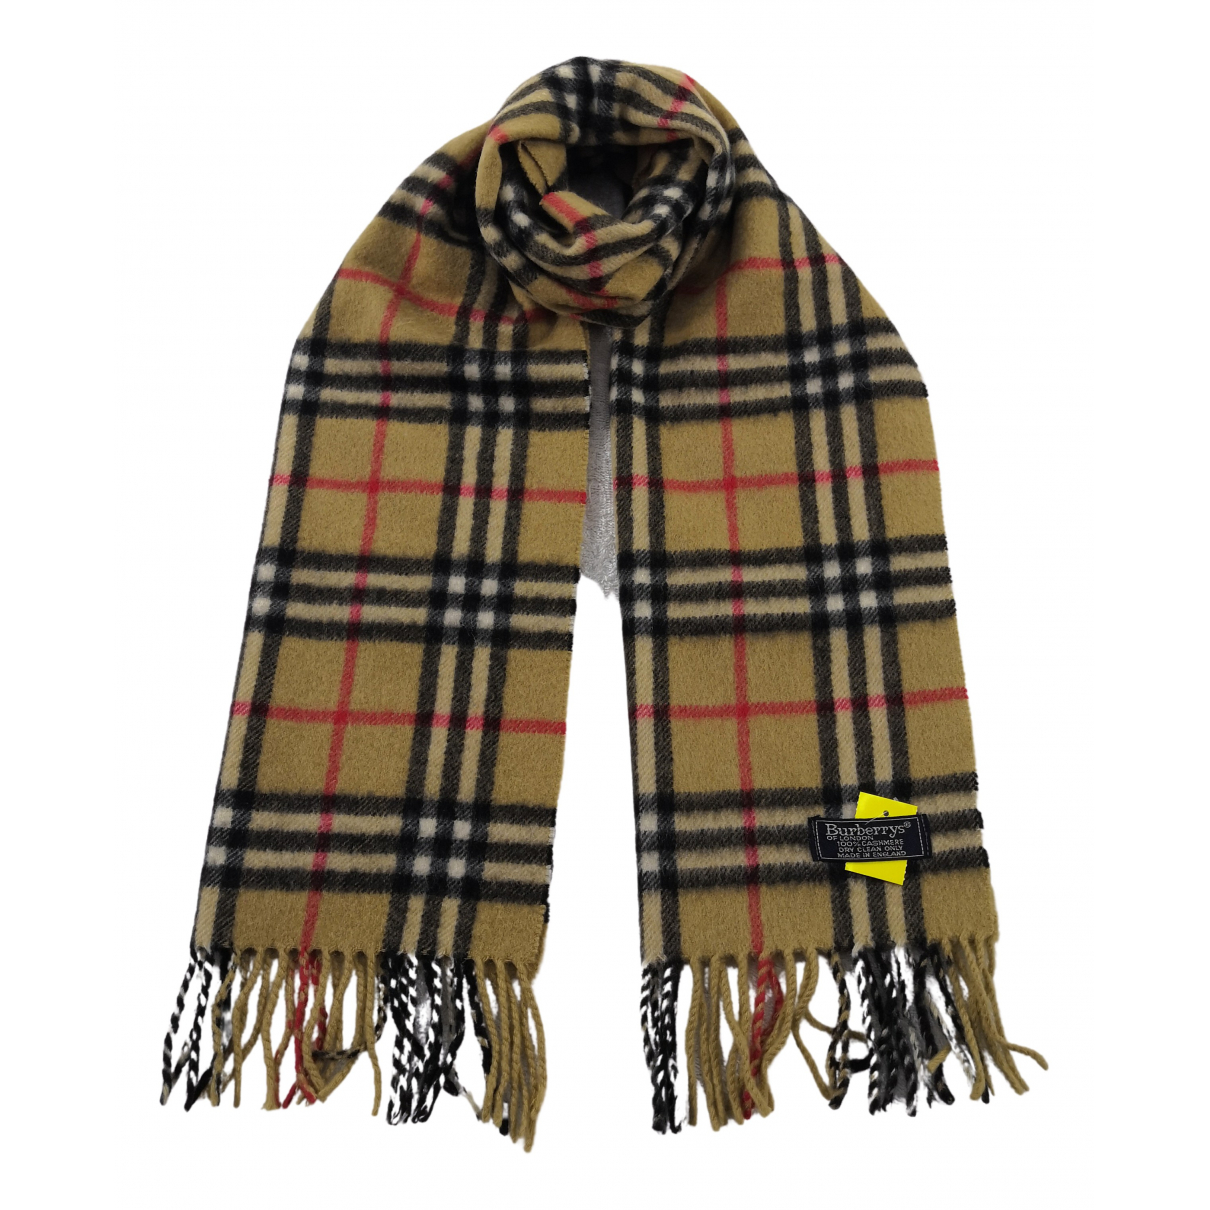 Burberry N Multicolour Cashmere scarf for Women N